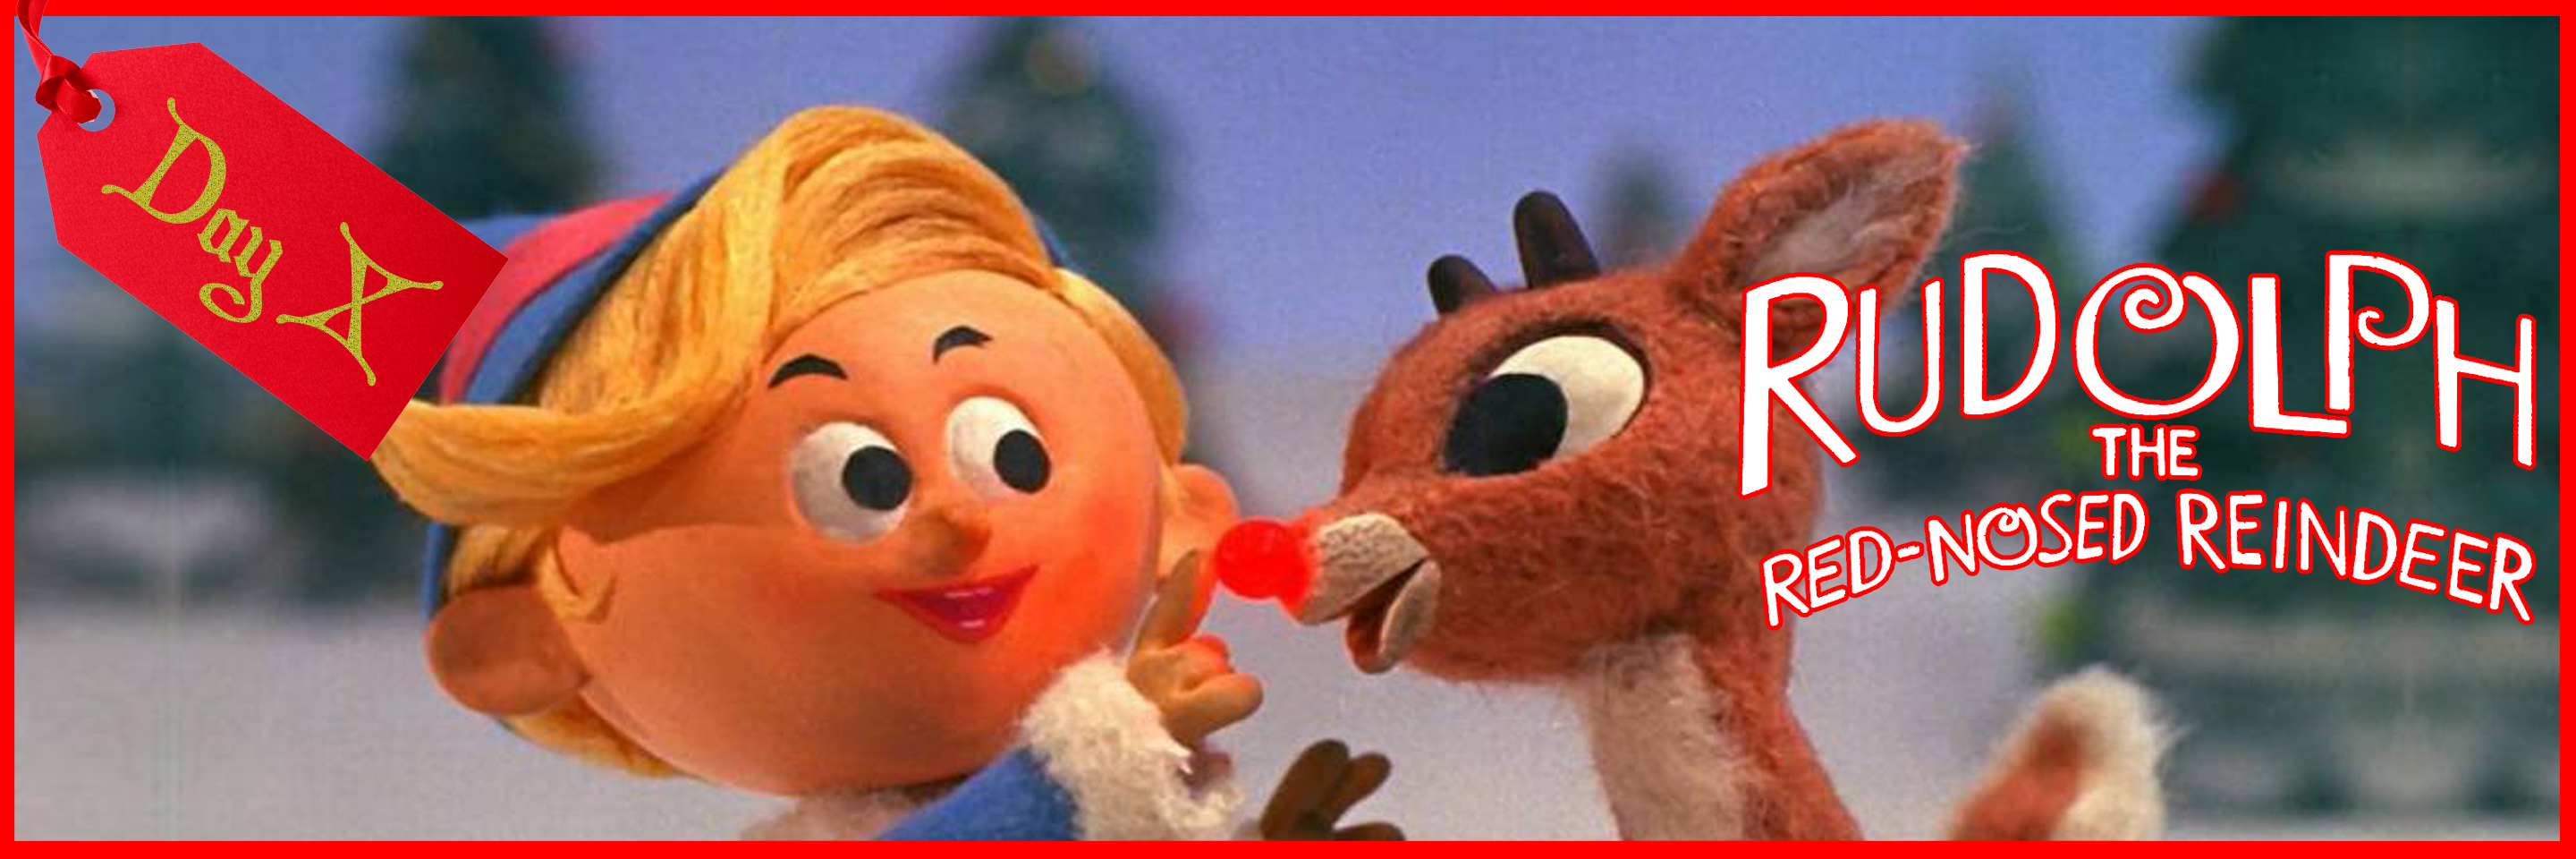 de137d3b84c3c Rudolph The Red-Nosed Reindeer Archives - VictorMoranLive.com